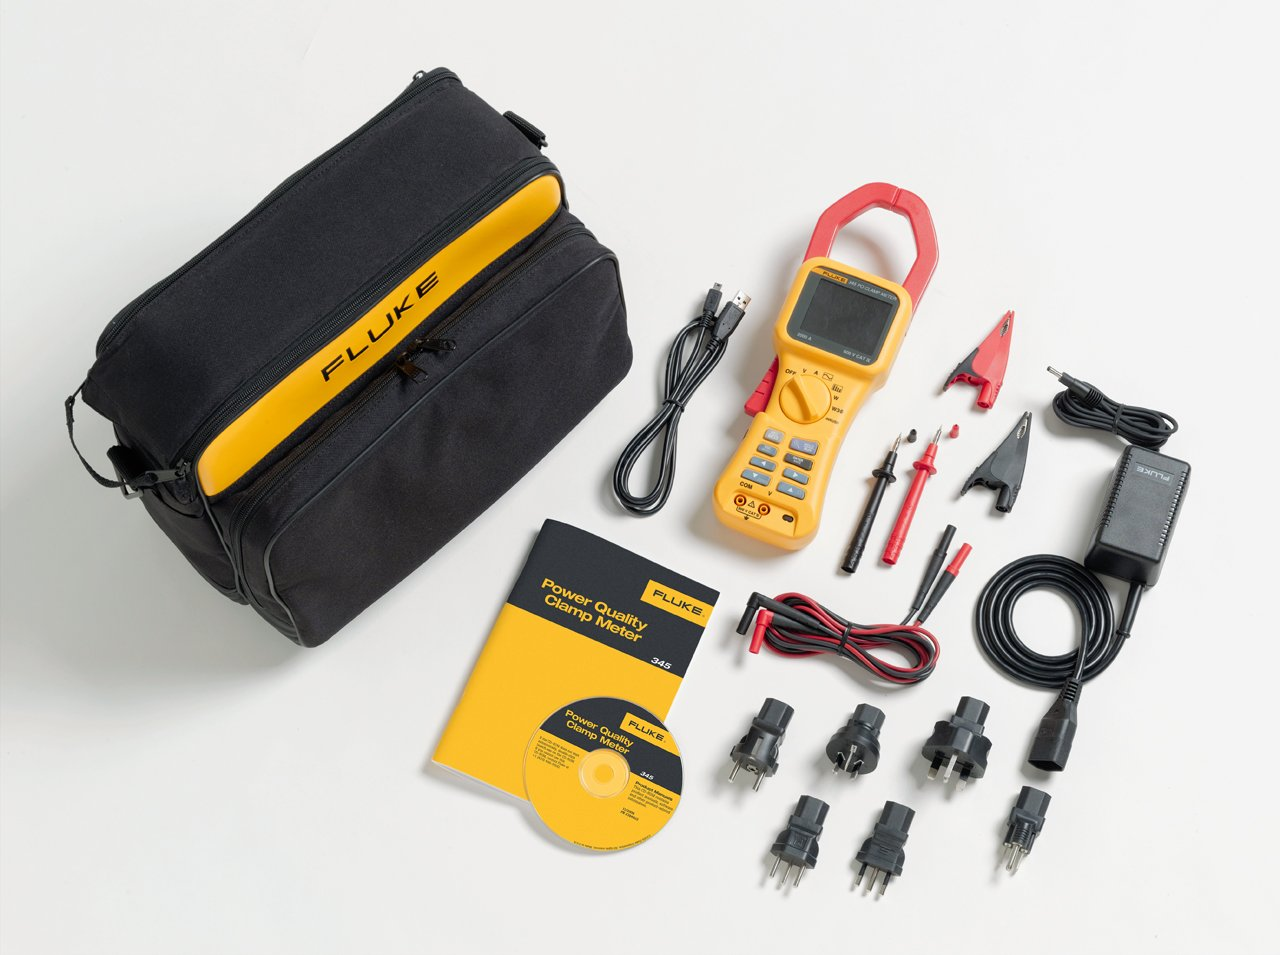 FLUKE 345 - Power Quality Clamp Meter